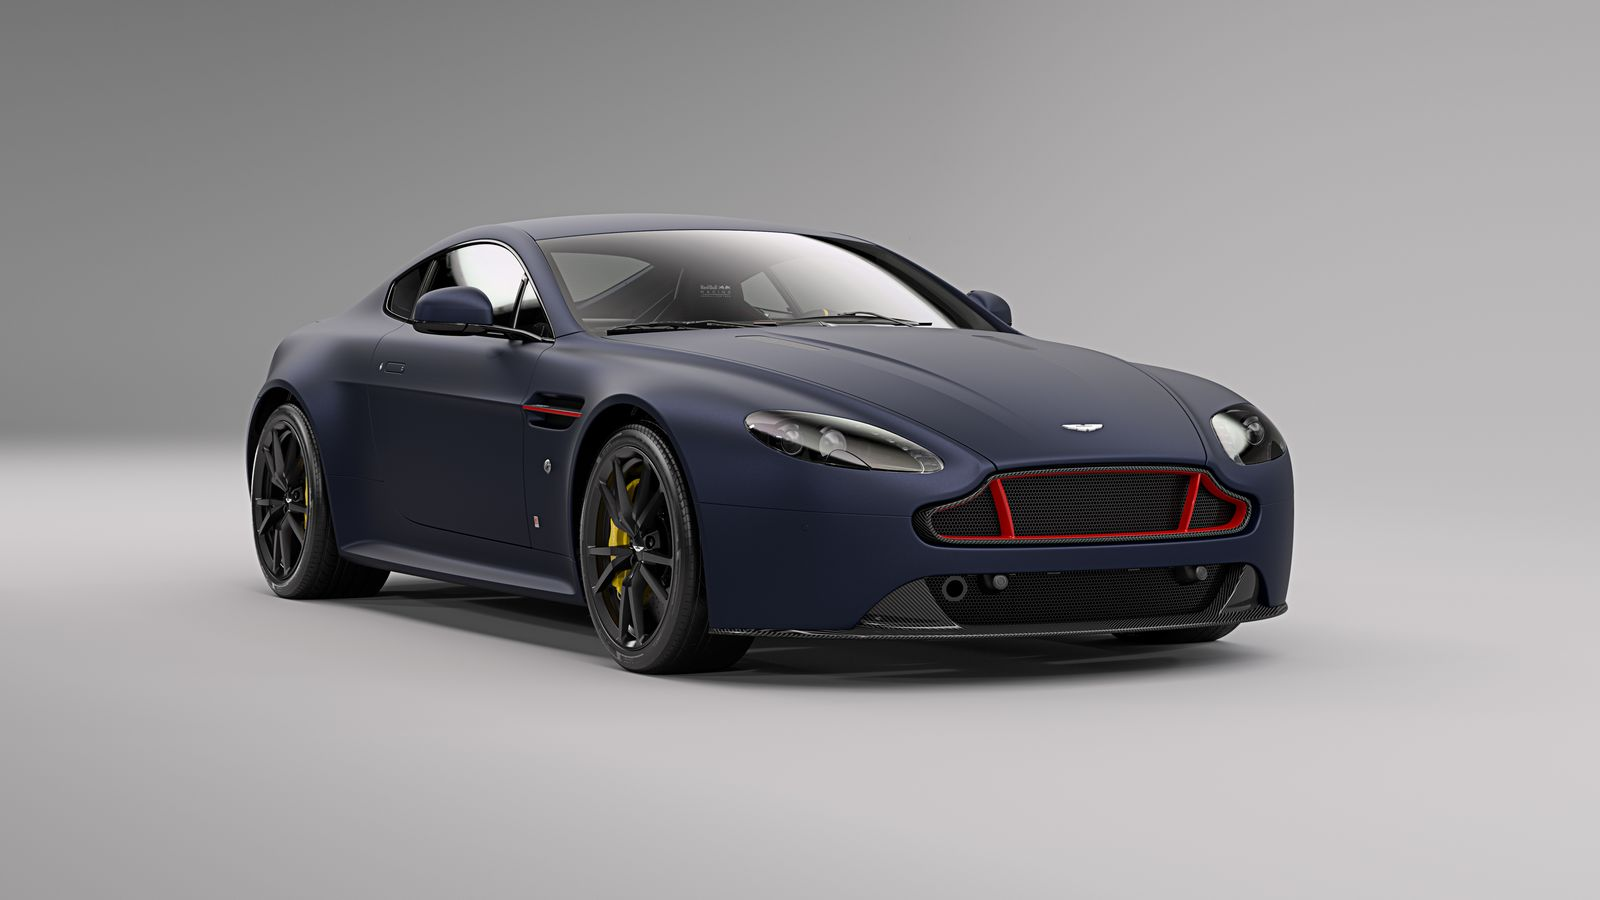 aston martin extends red bull partnership with limited edition vantage s models autoevolution. Black Bedroom Furniture Sets. Home Design Ideas